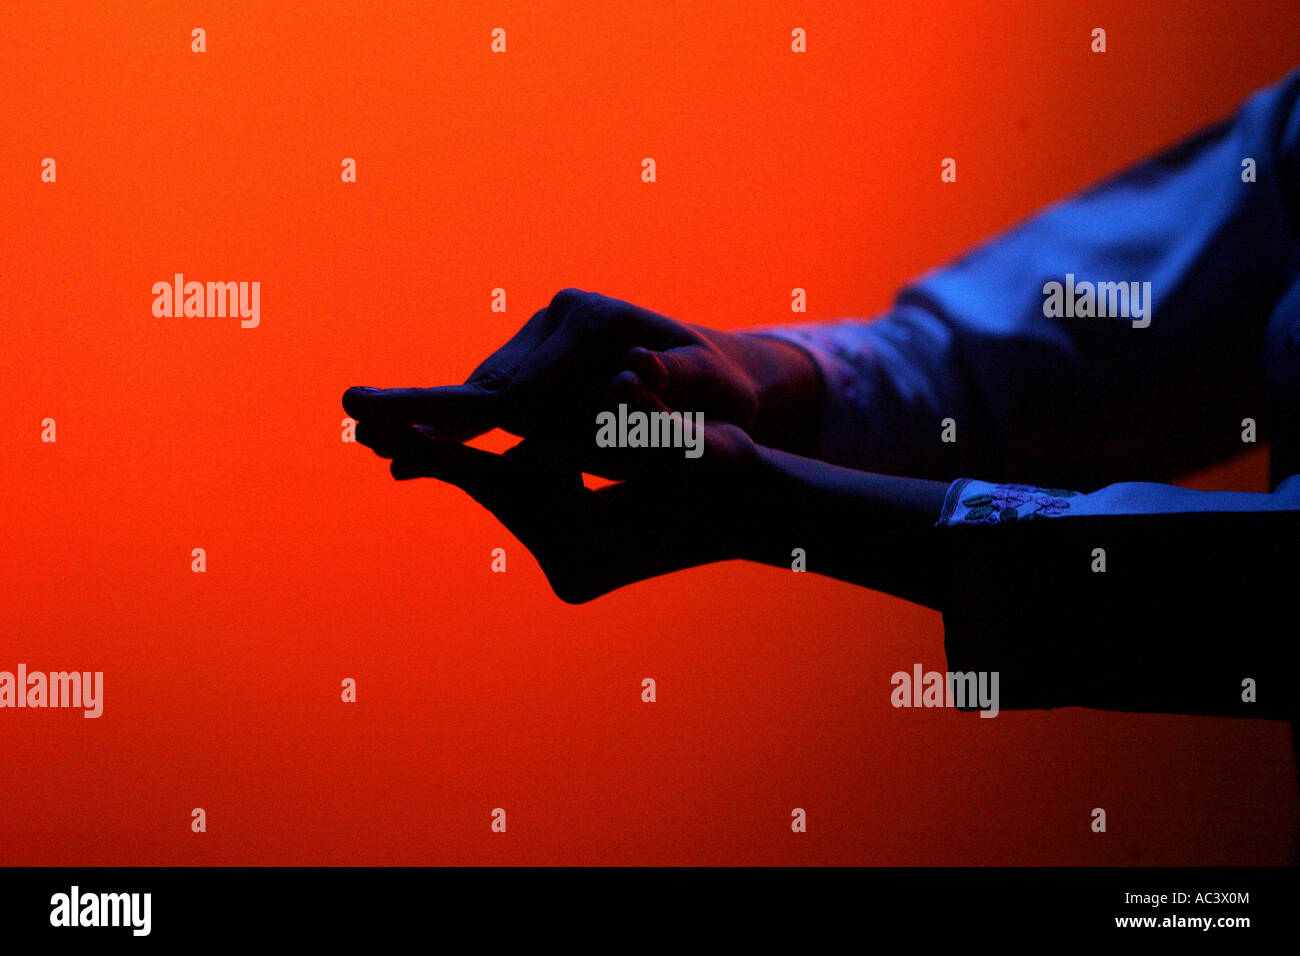 Hand Gesture from a Kuchipudi Performance - Stock Image